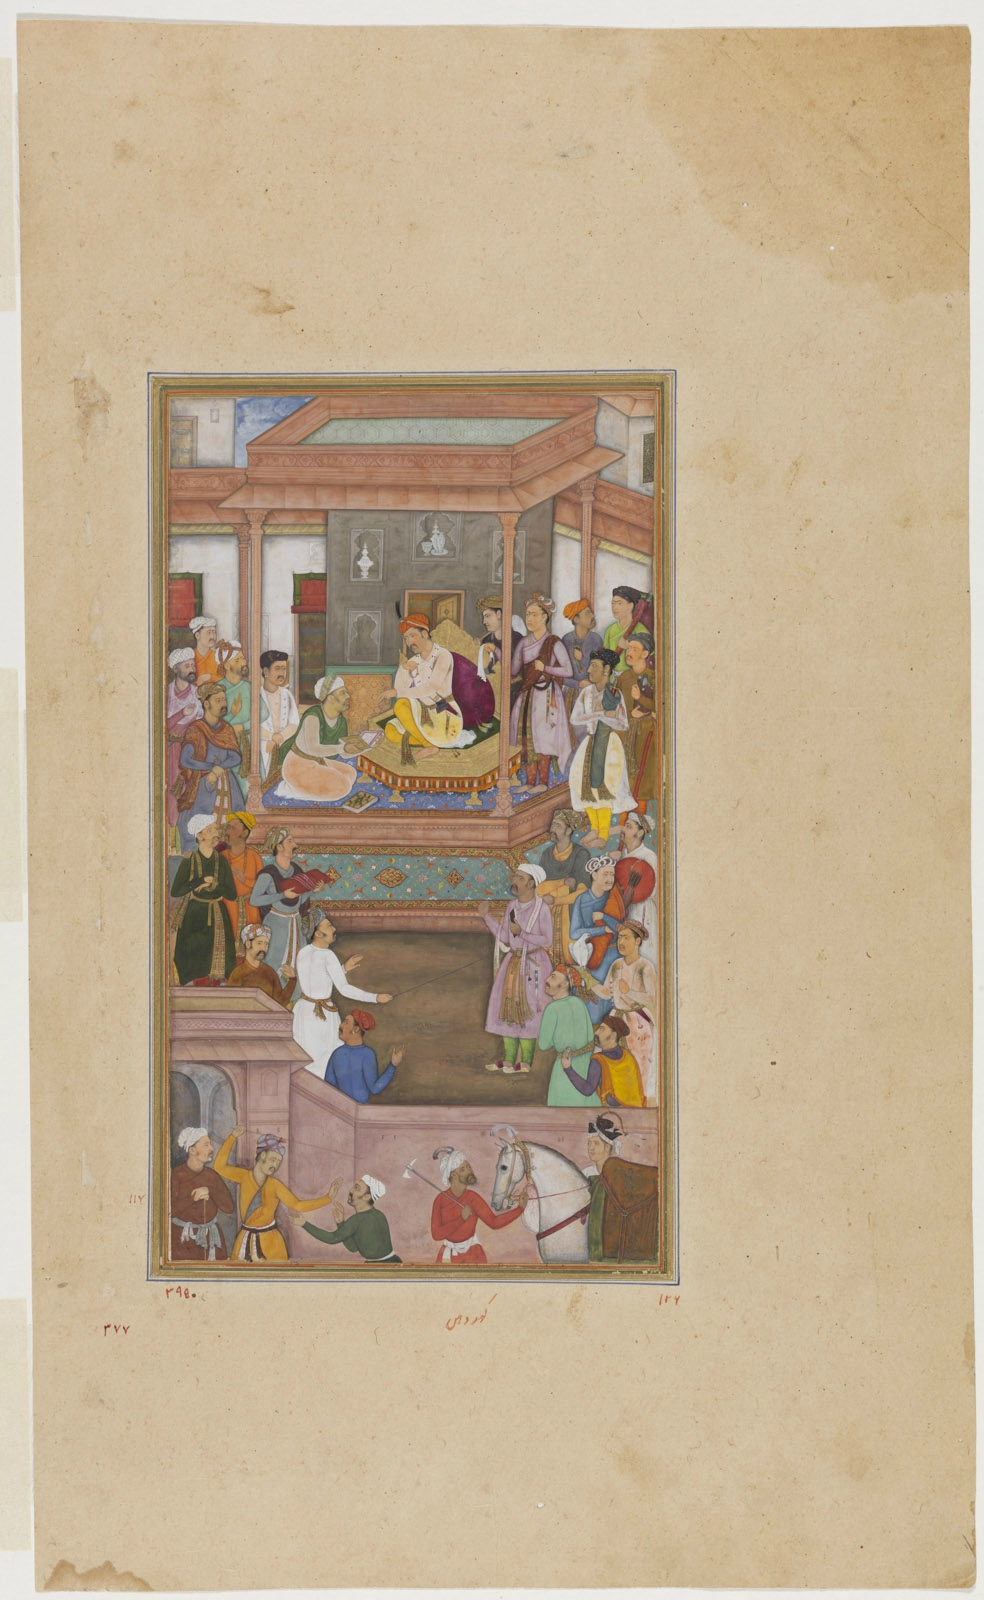 Asian Art Museum presents striking works from three influential Islamic empires